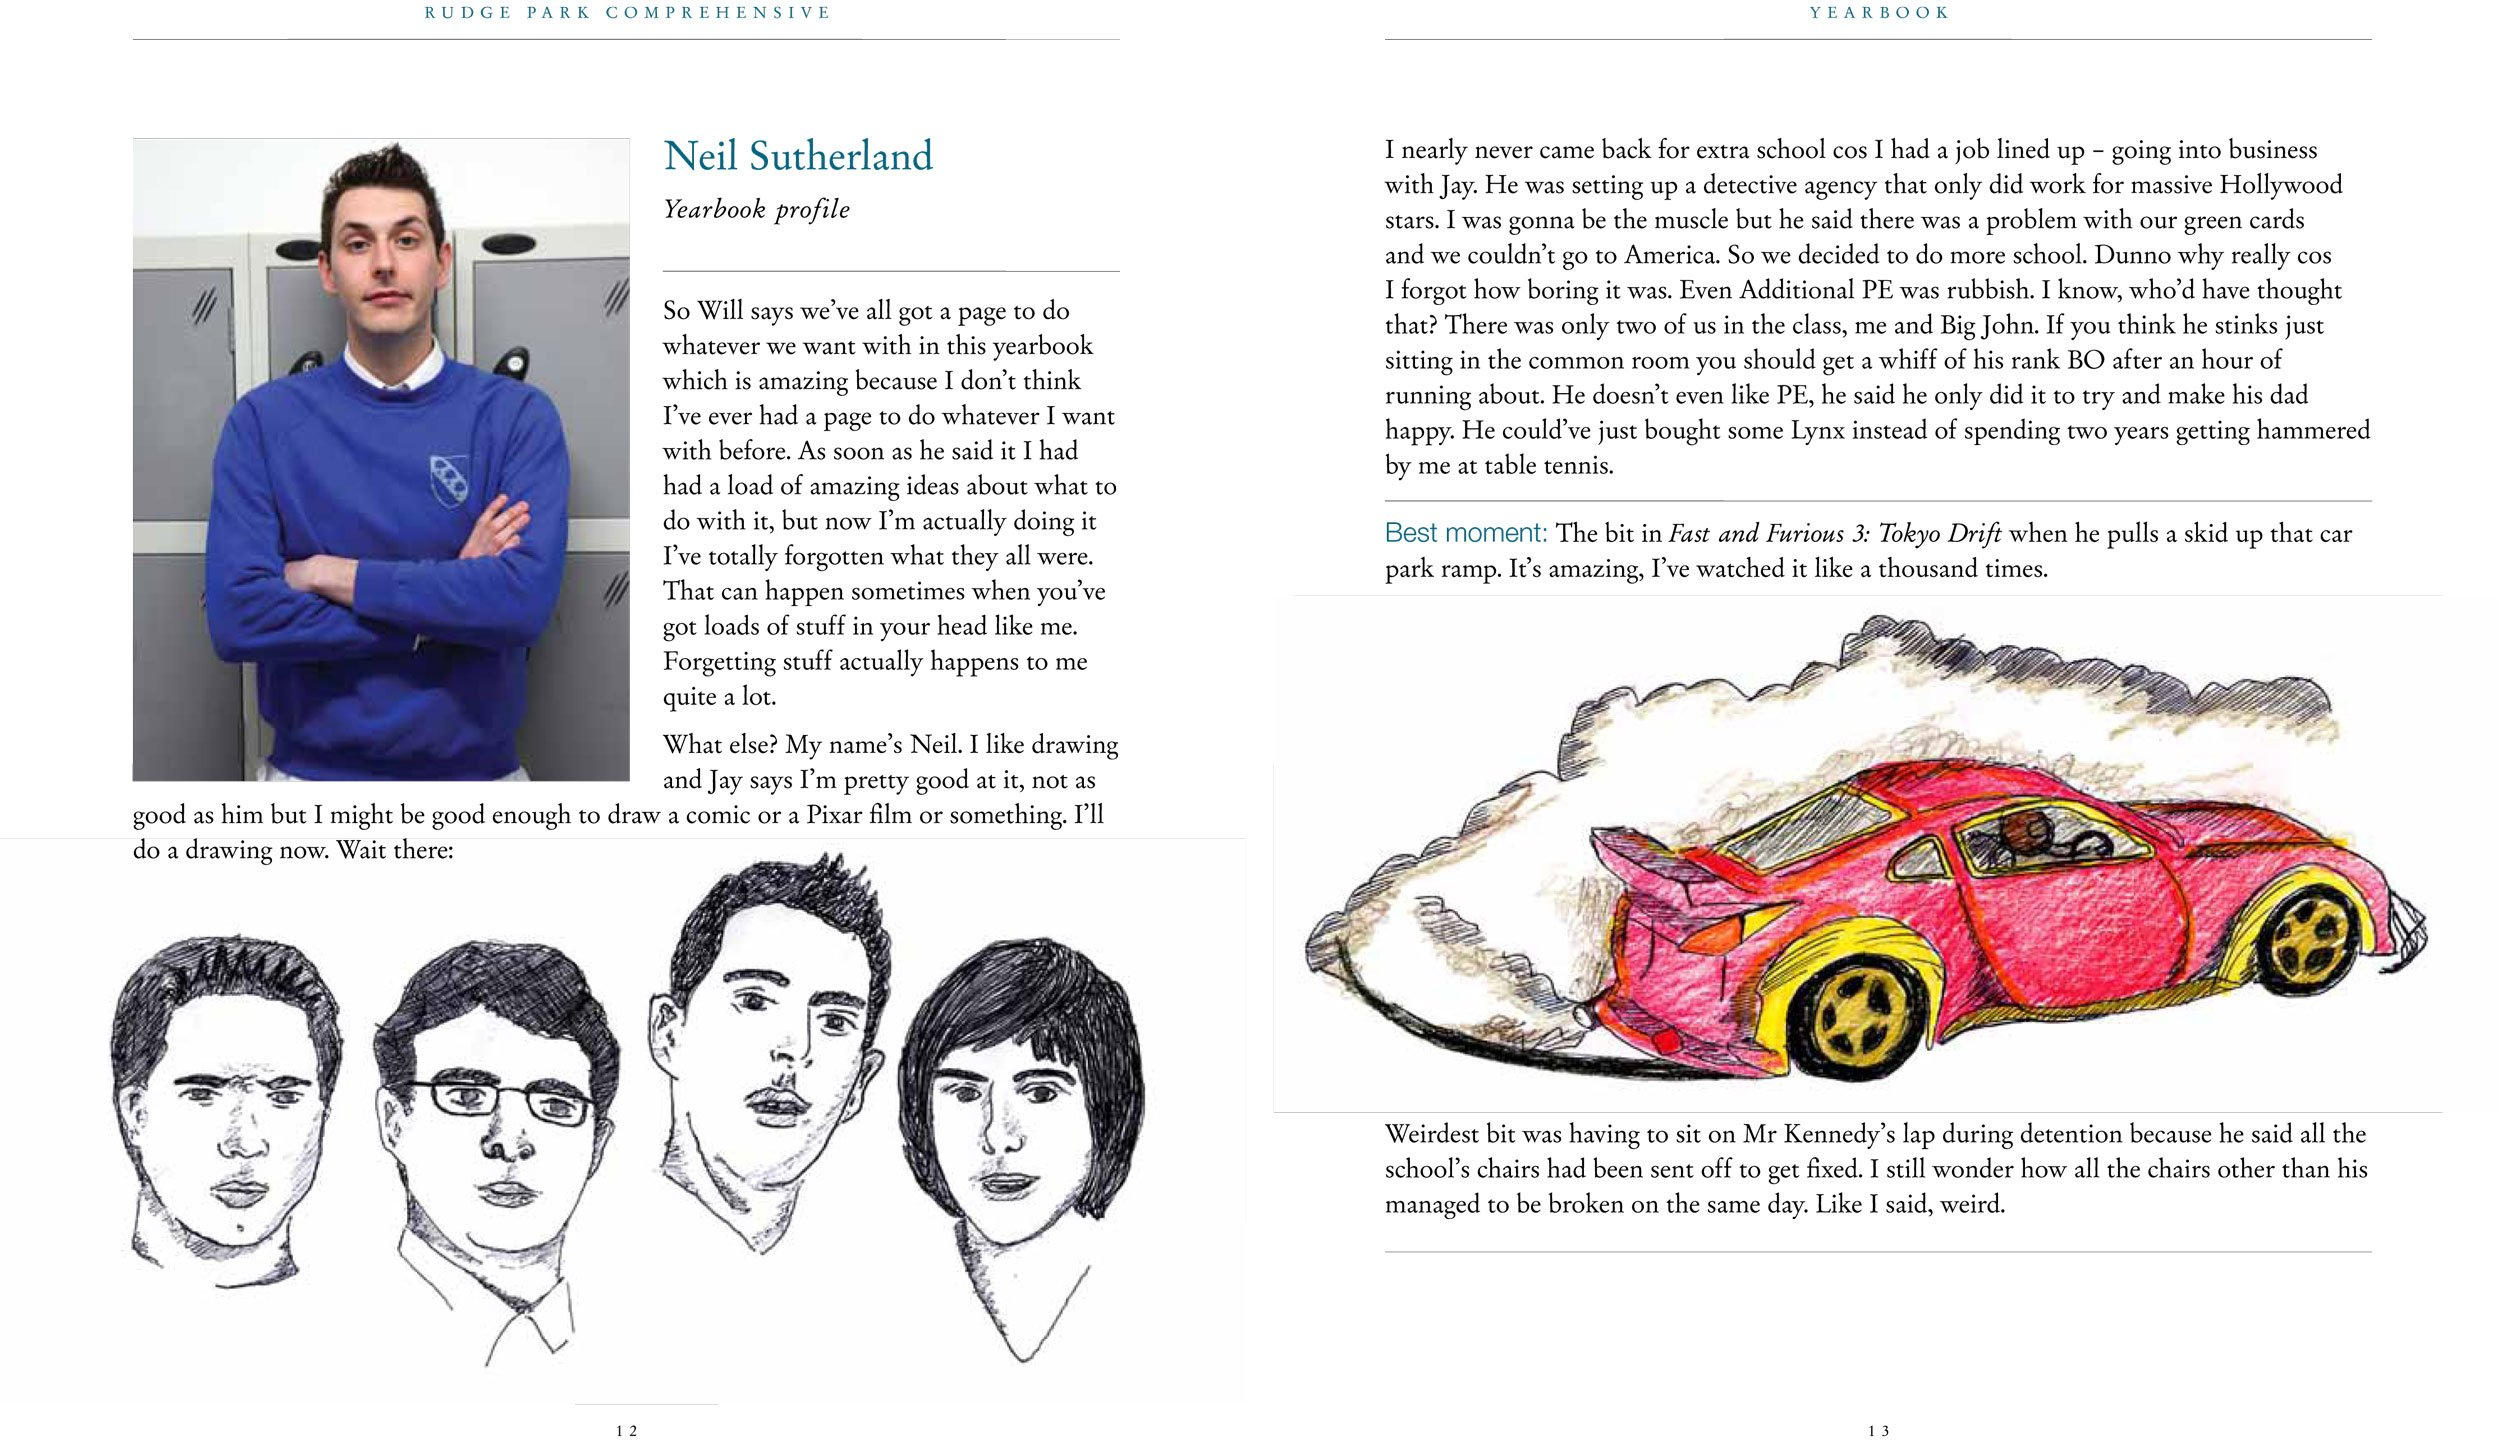 Pdf the inbetweeners yearbook